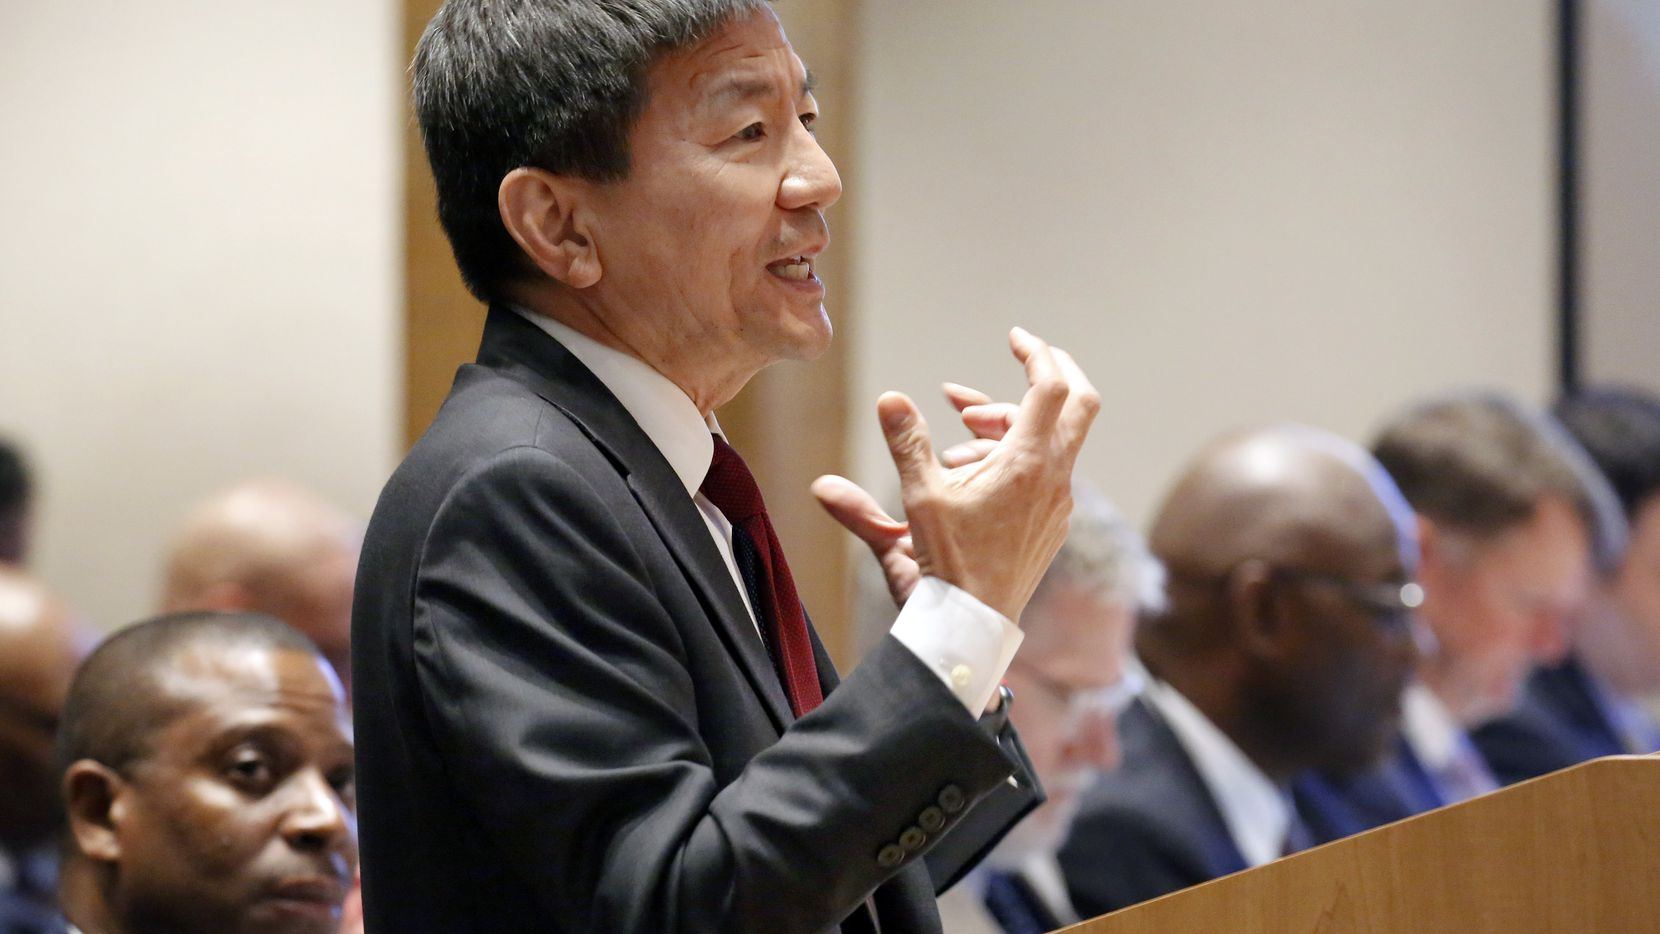 Dallas County Health Department director Dr. Philip Huang presents information about the coronavirus at the Dallas County Commissioner Court in Dallas, Tuesday, February 4, 2020.